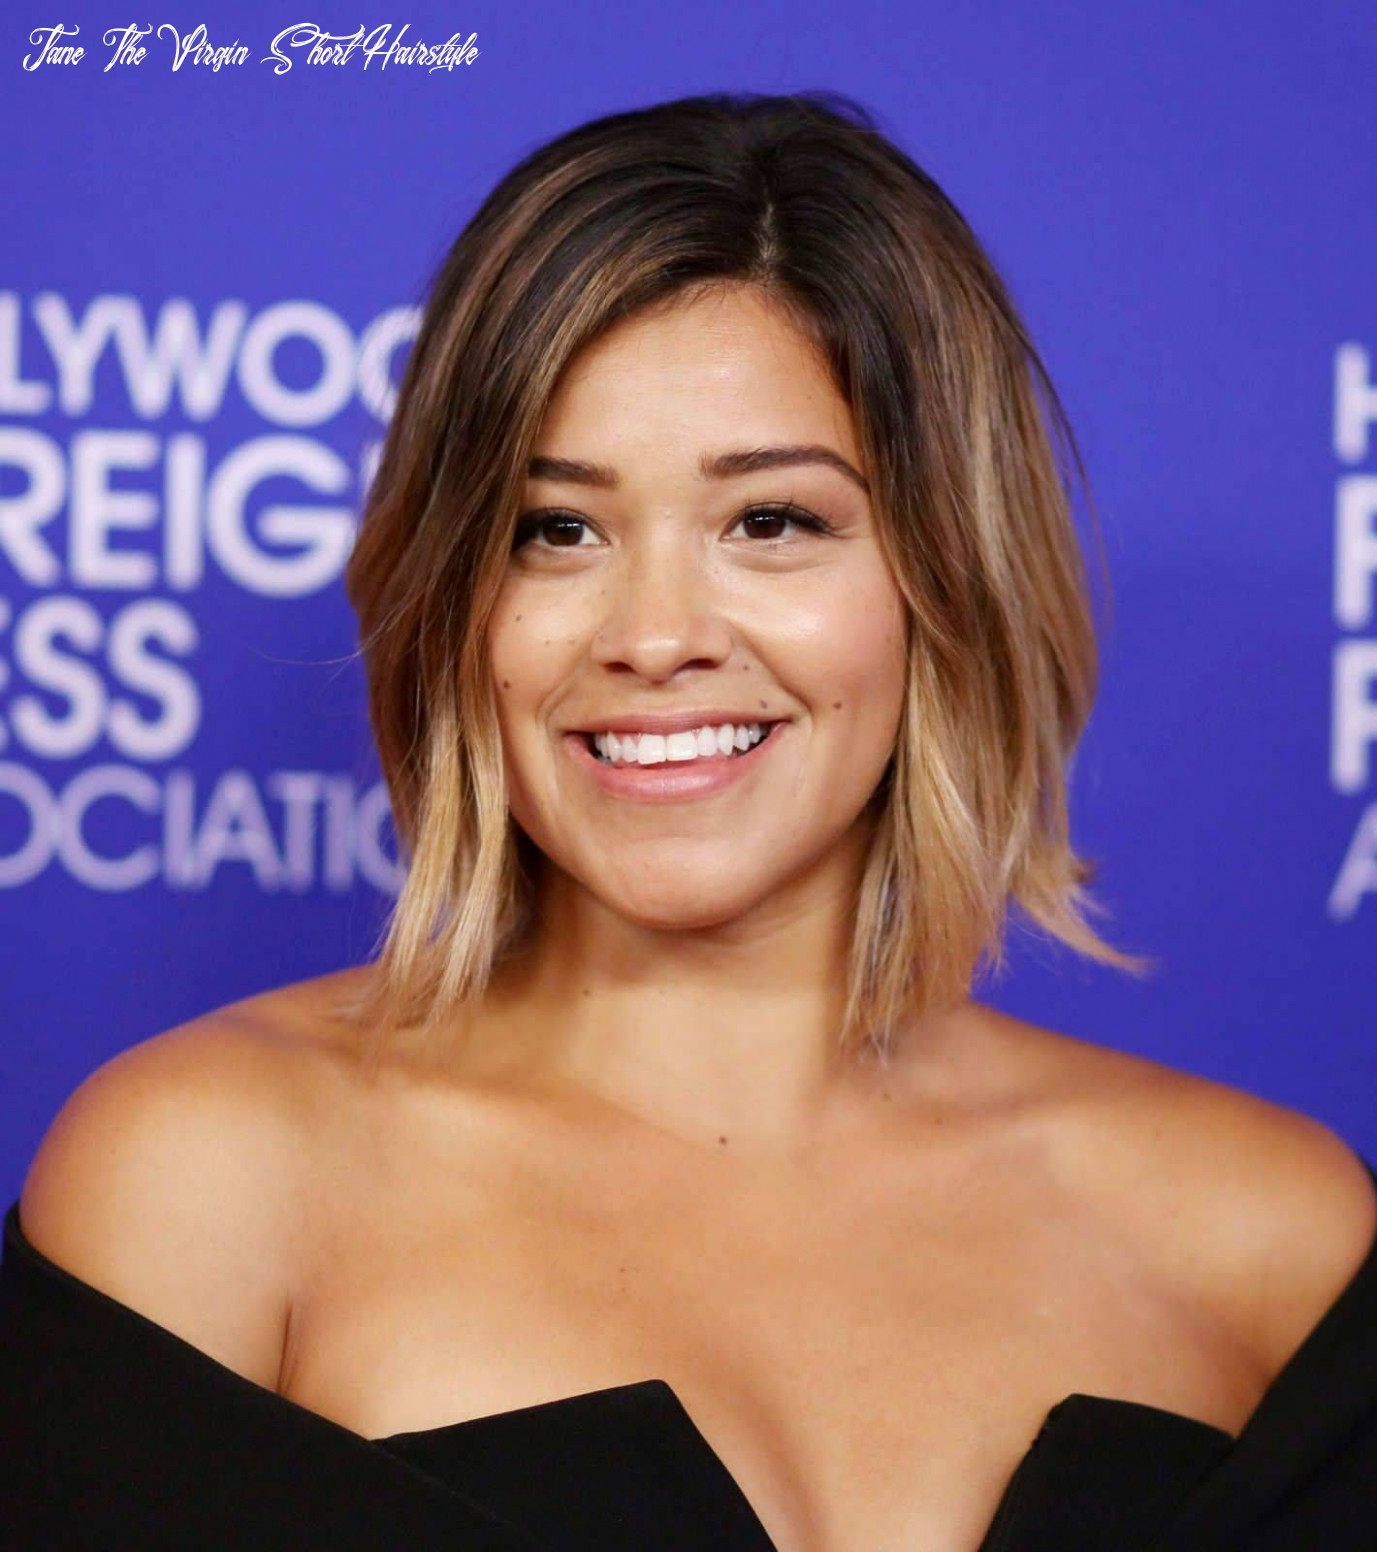 Pin on beauty & fashion: hair & makeup jane the virgin short hairstyle